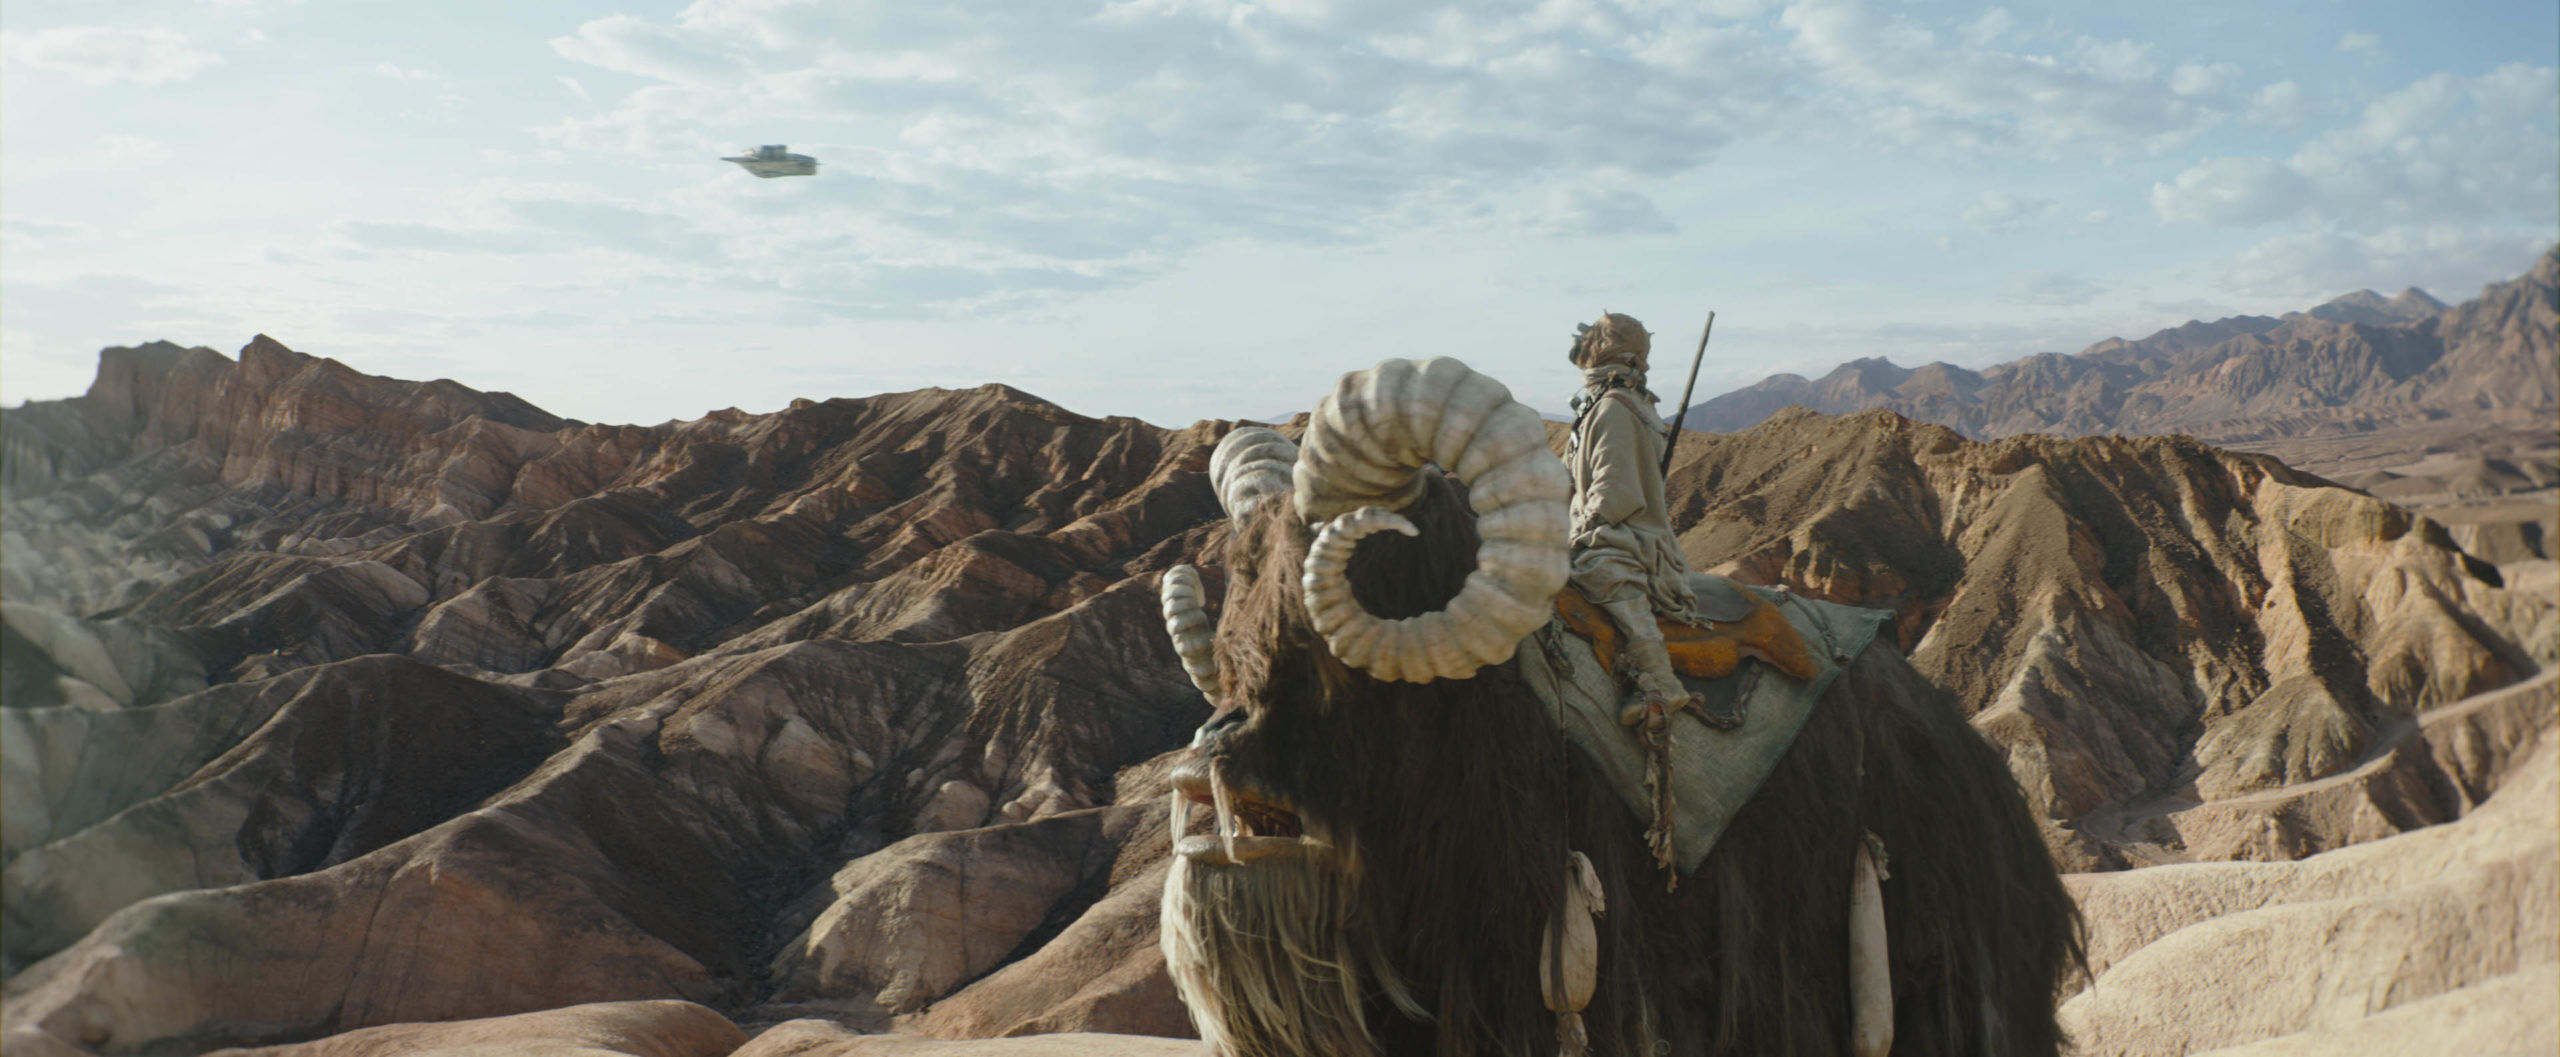 the-mandalorian season 2 episode 1 review tatooine